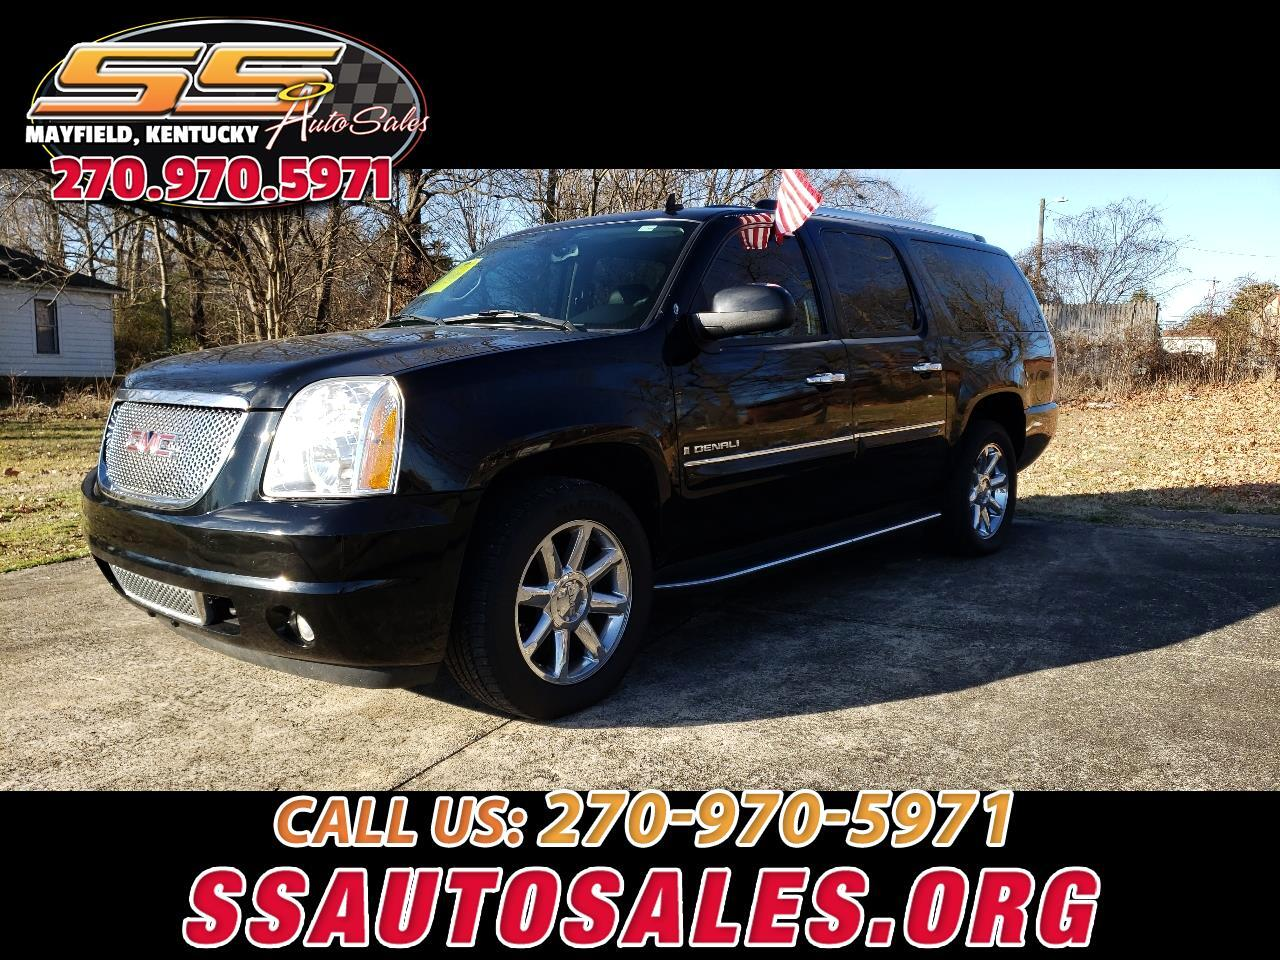 Used 2007 Gmc Yukon Xl Denali Awd 4dr 1500 For Sale In Mayfield Ky